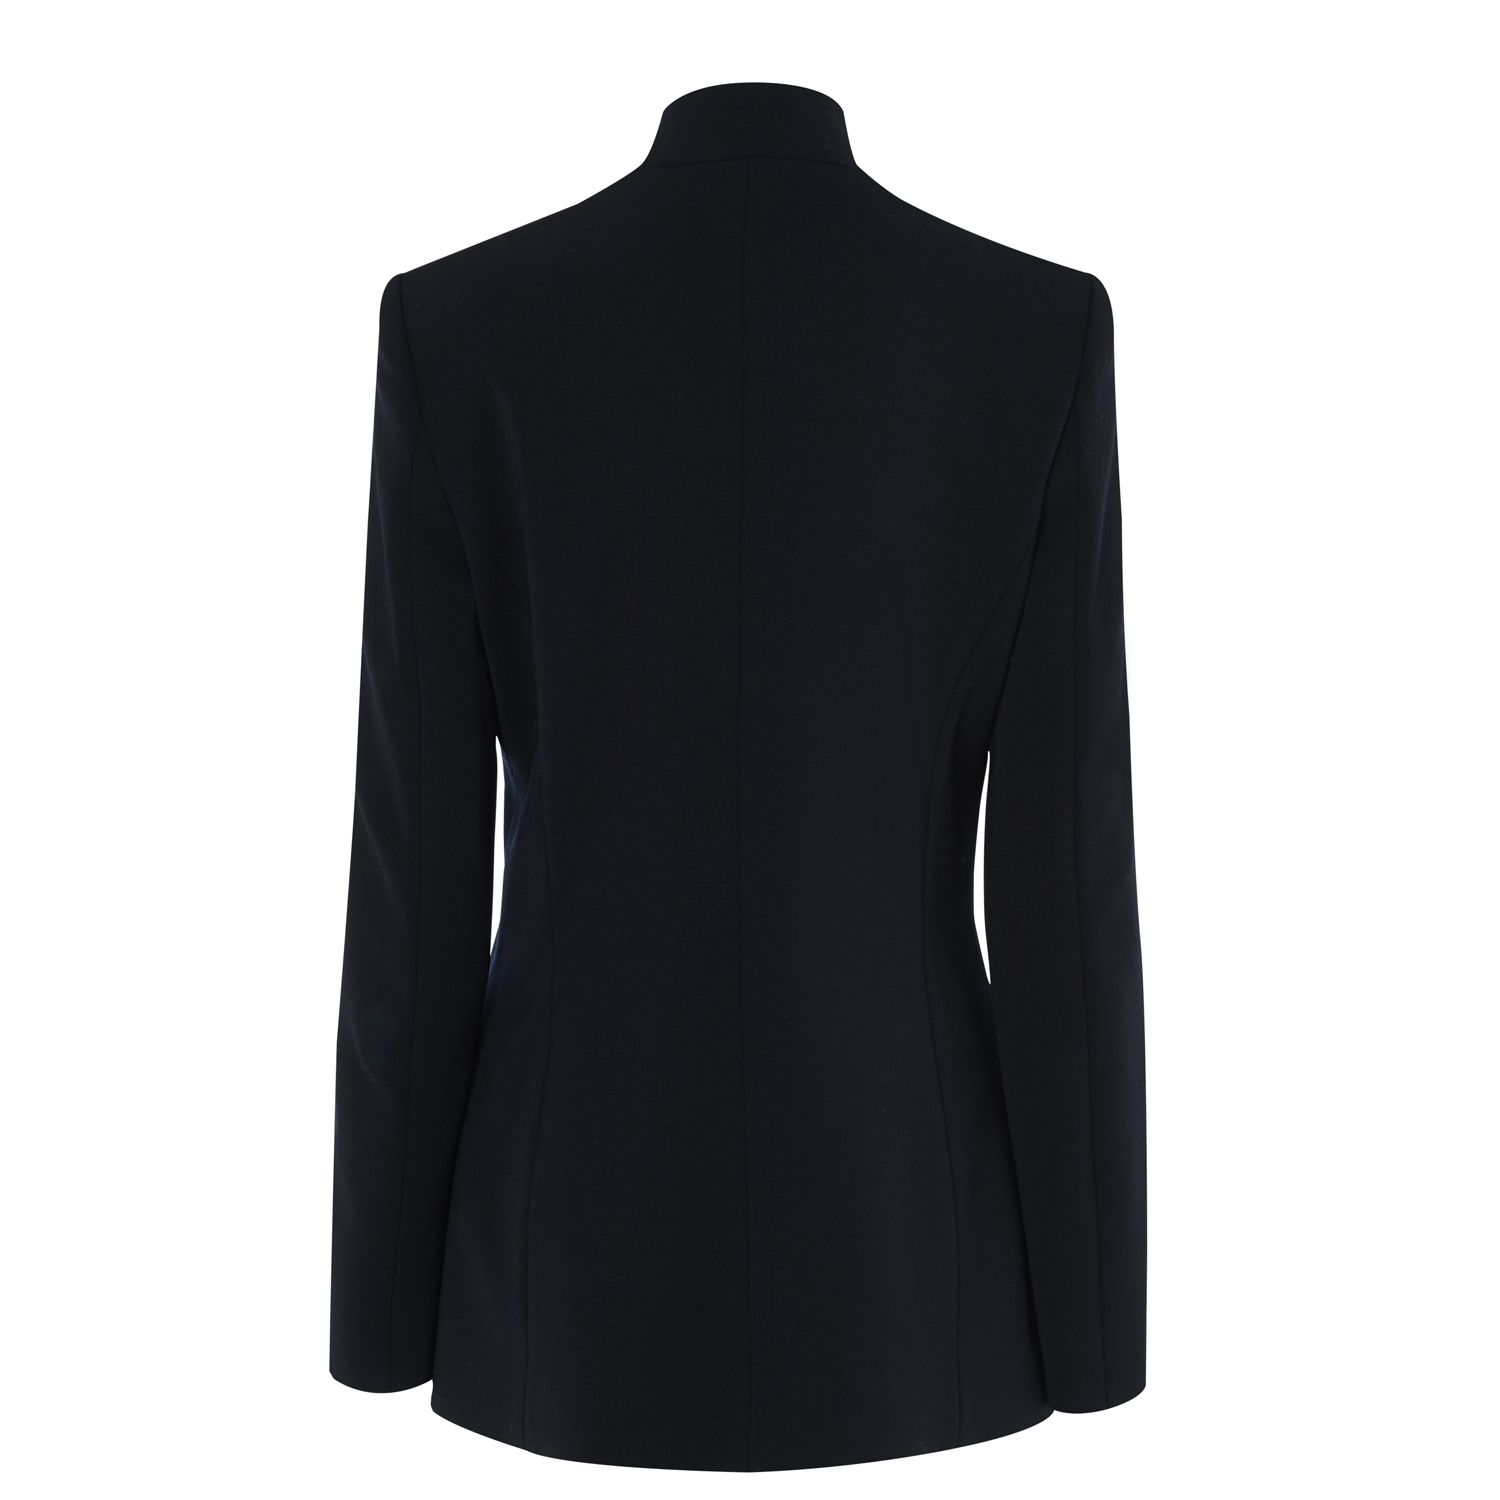 Bi Stretch Asymmetric Jacket